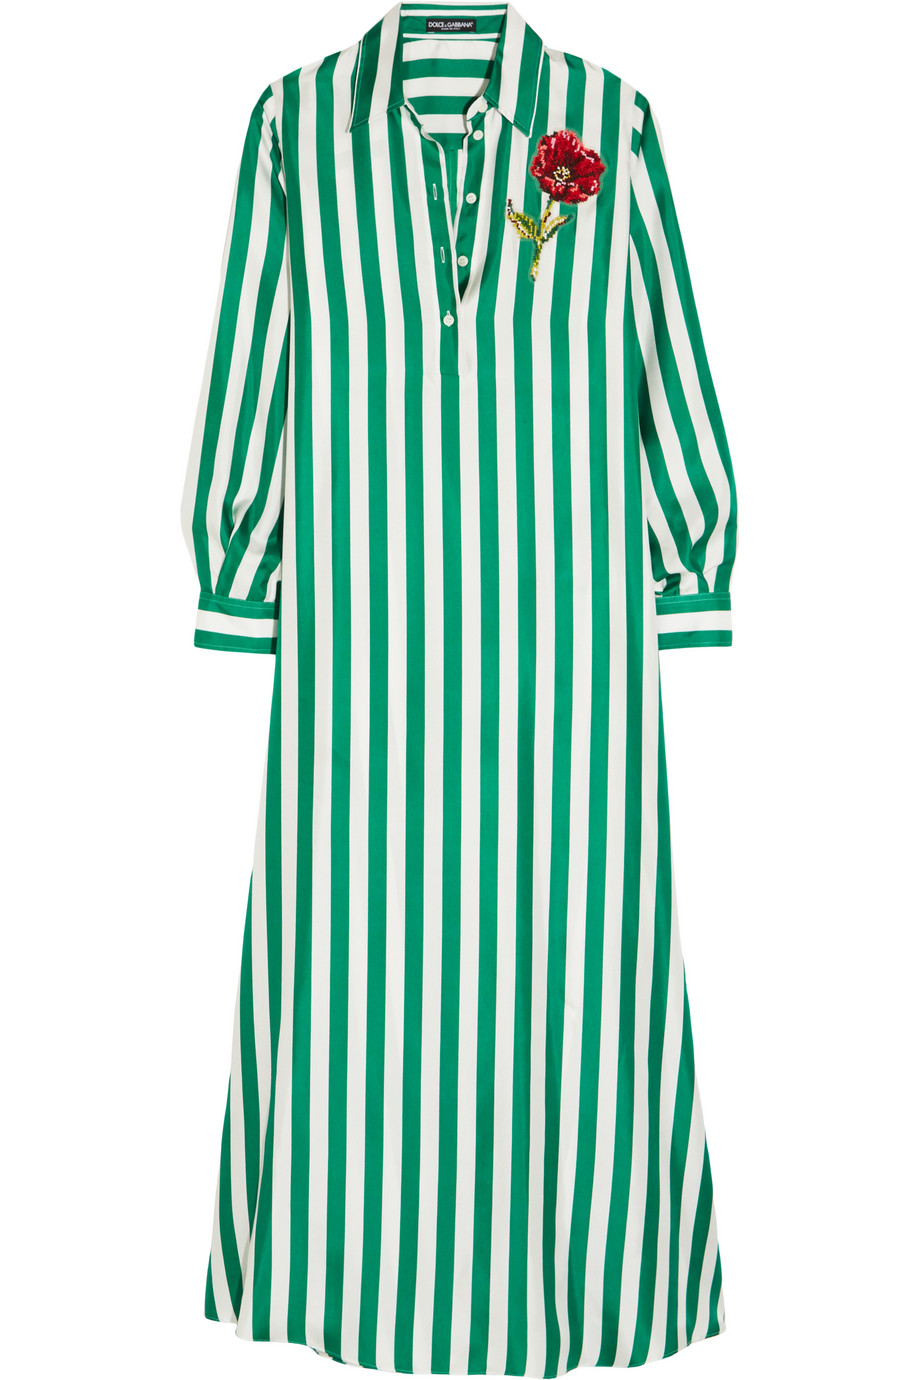 Dolce & Gabbana Appliquéd Striped Silk-Satin Maxi Dress, Green, Women's, Size: 36